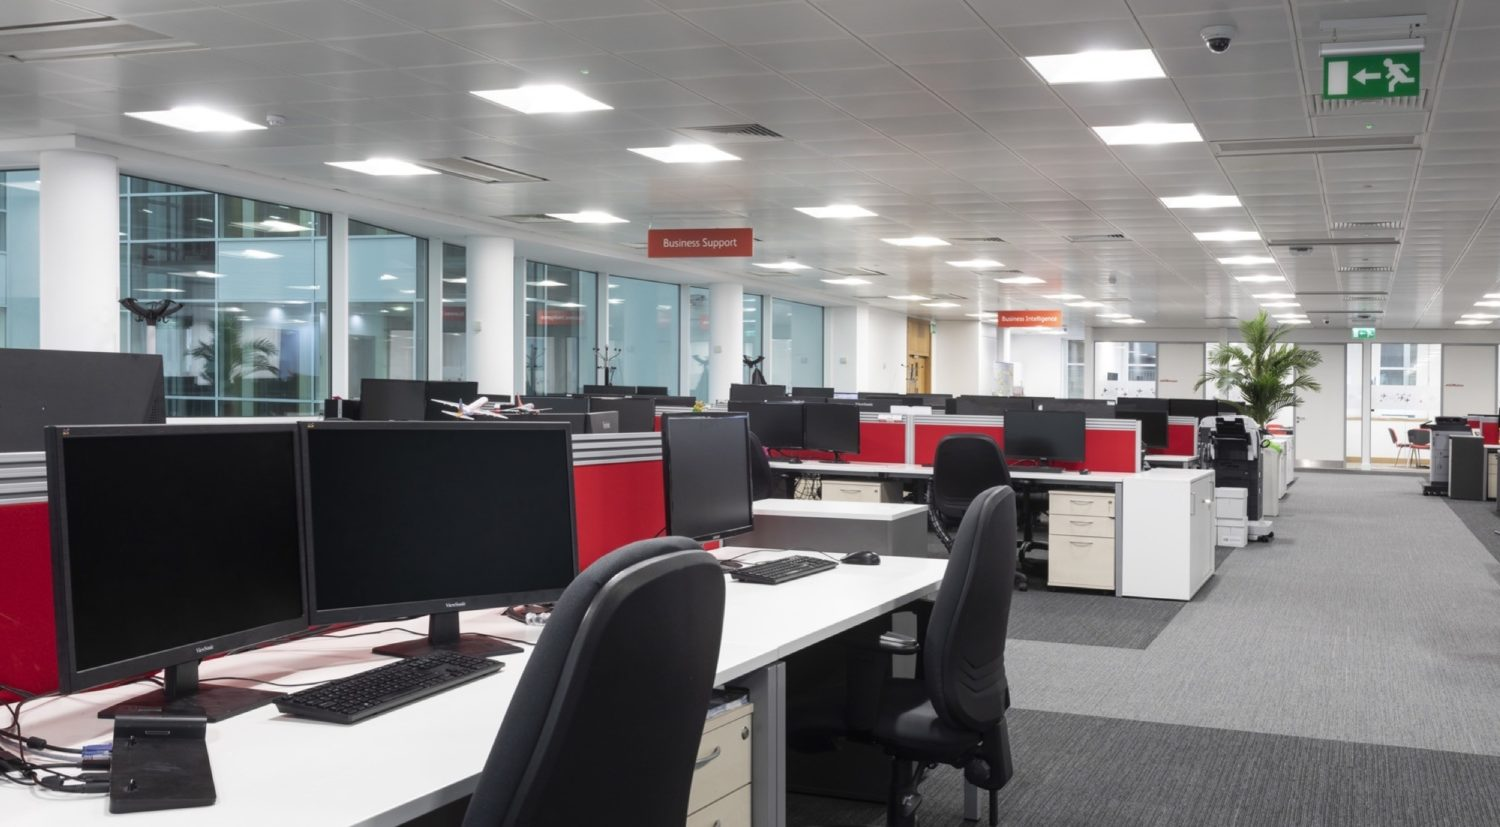 Jet2 open plan office fit out